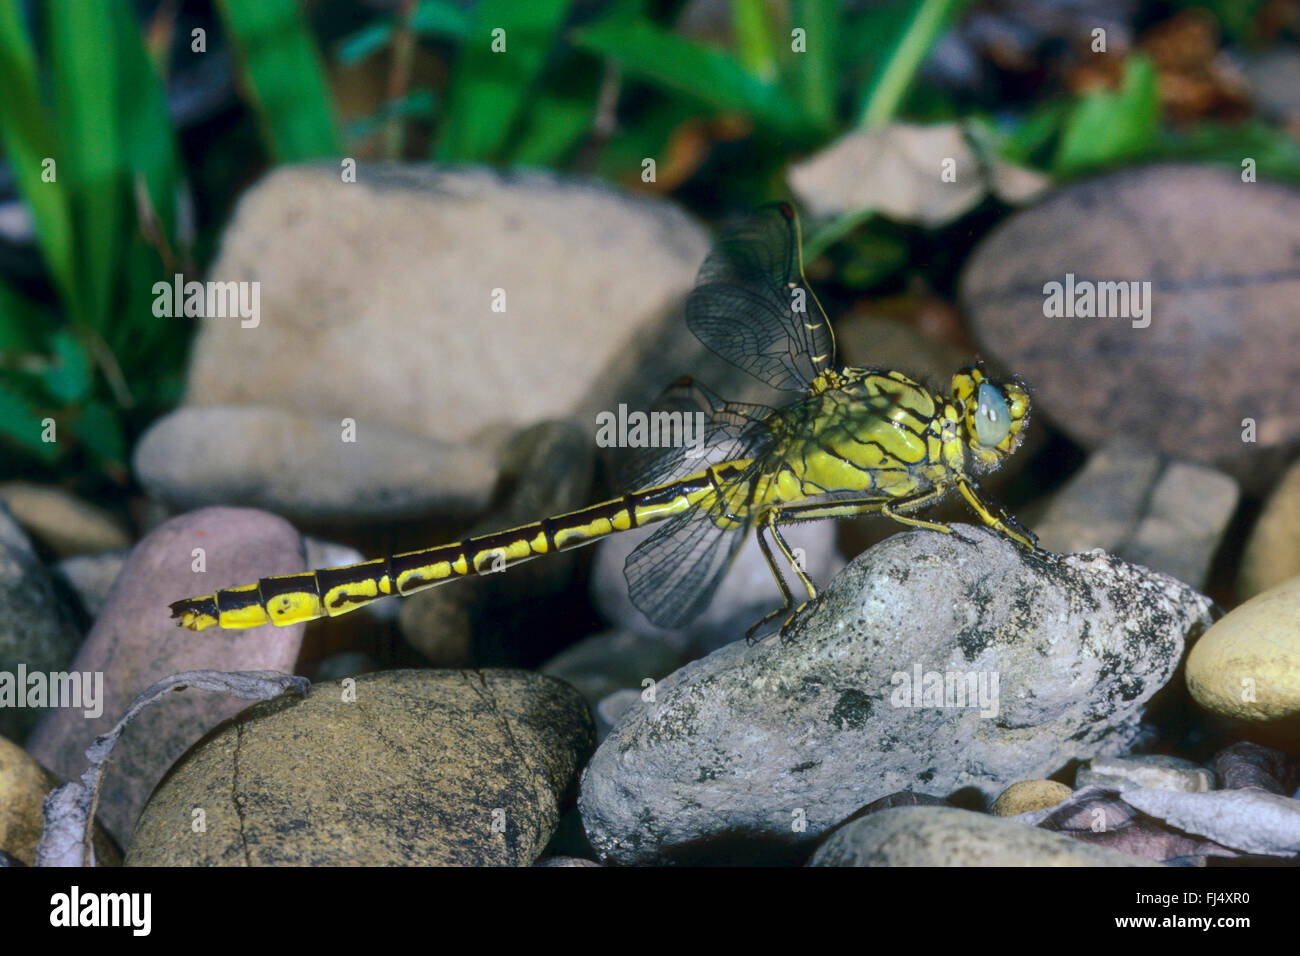 Western European gomphus (Gomphus pulchellus), sits on a stone, Germany - Stock Image